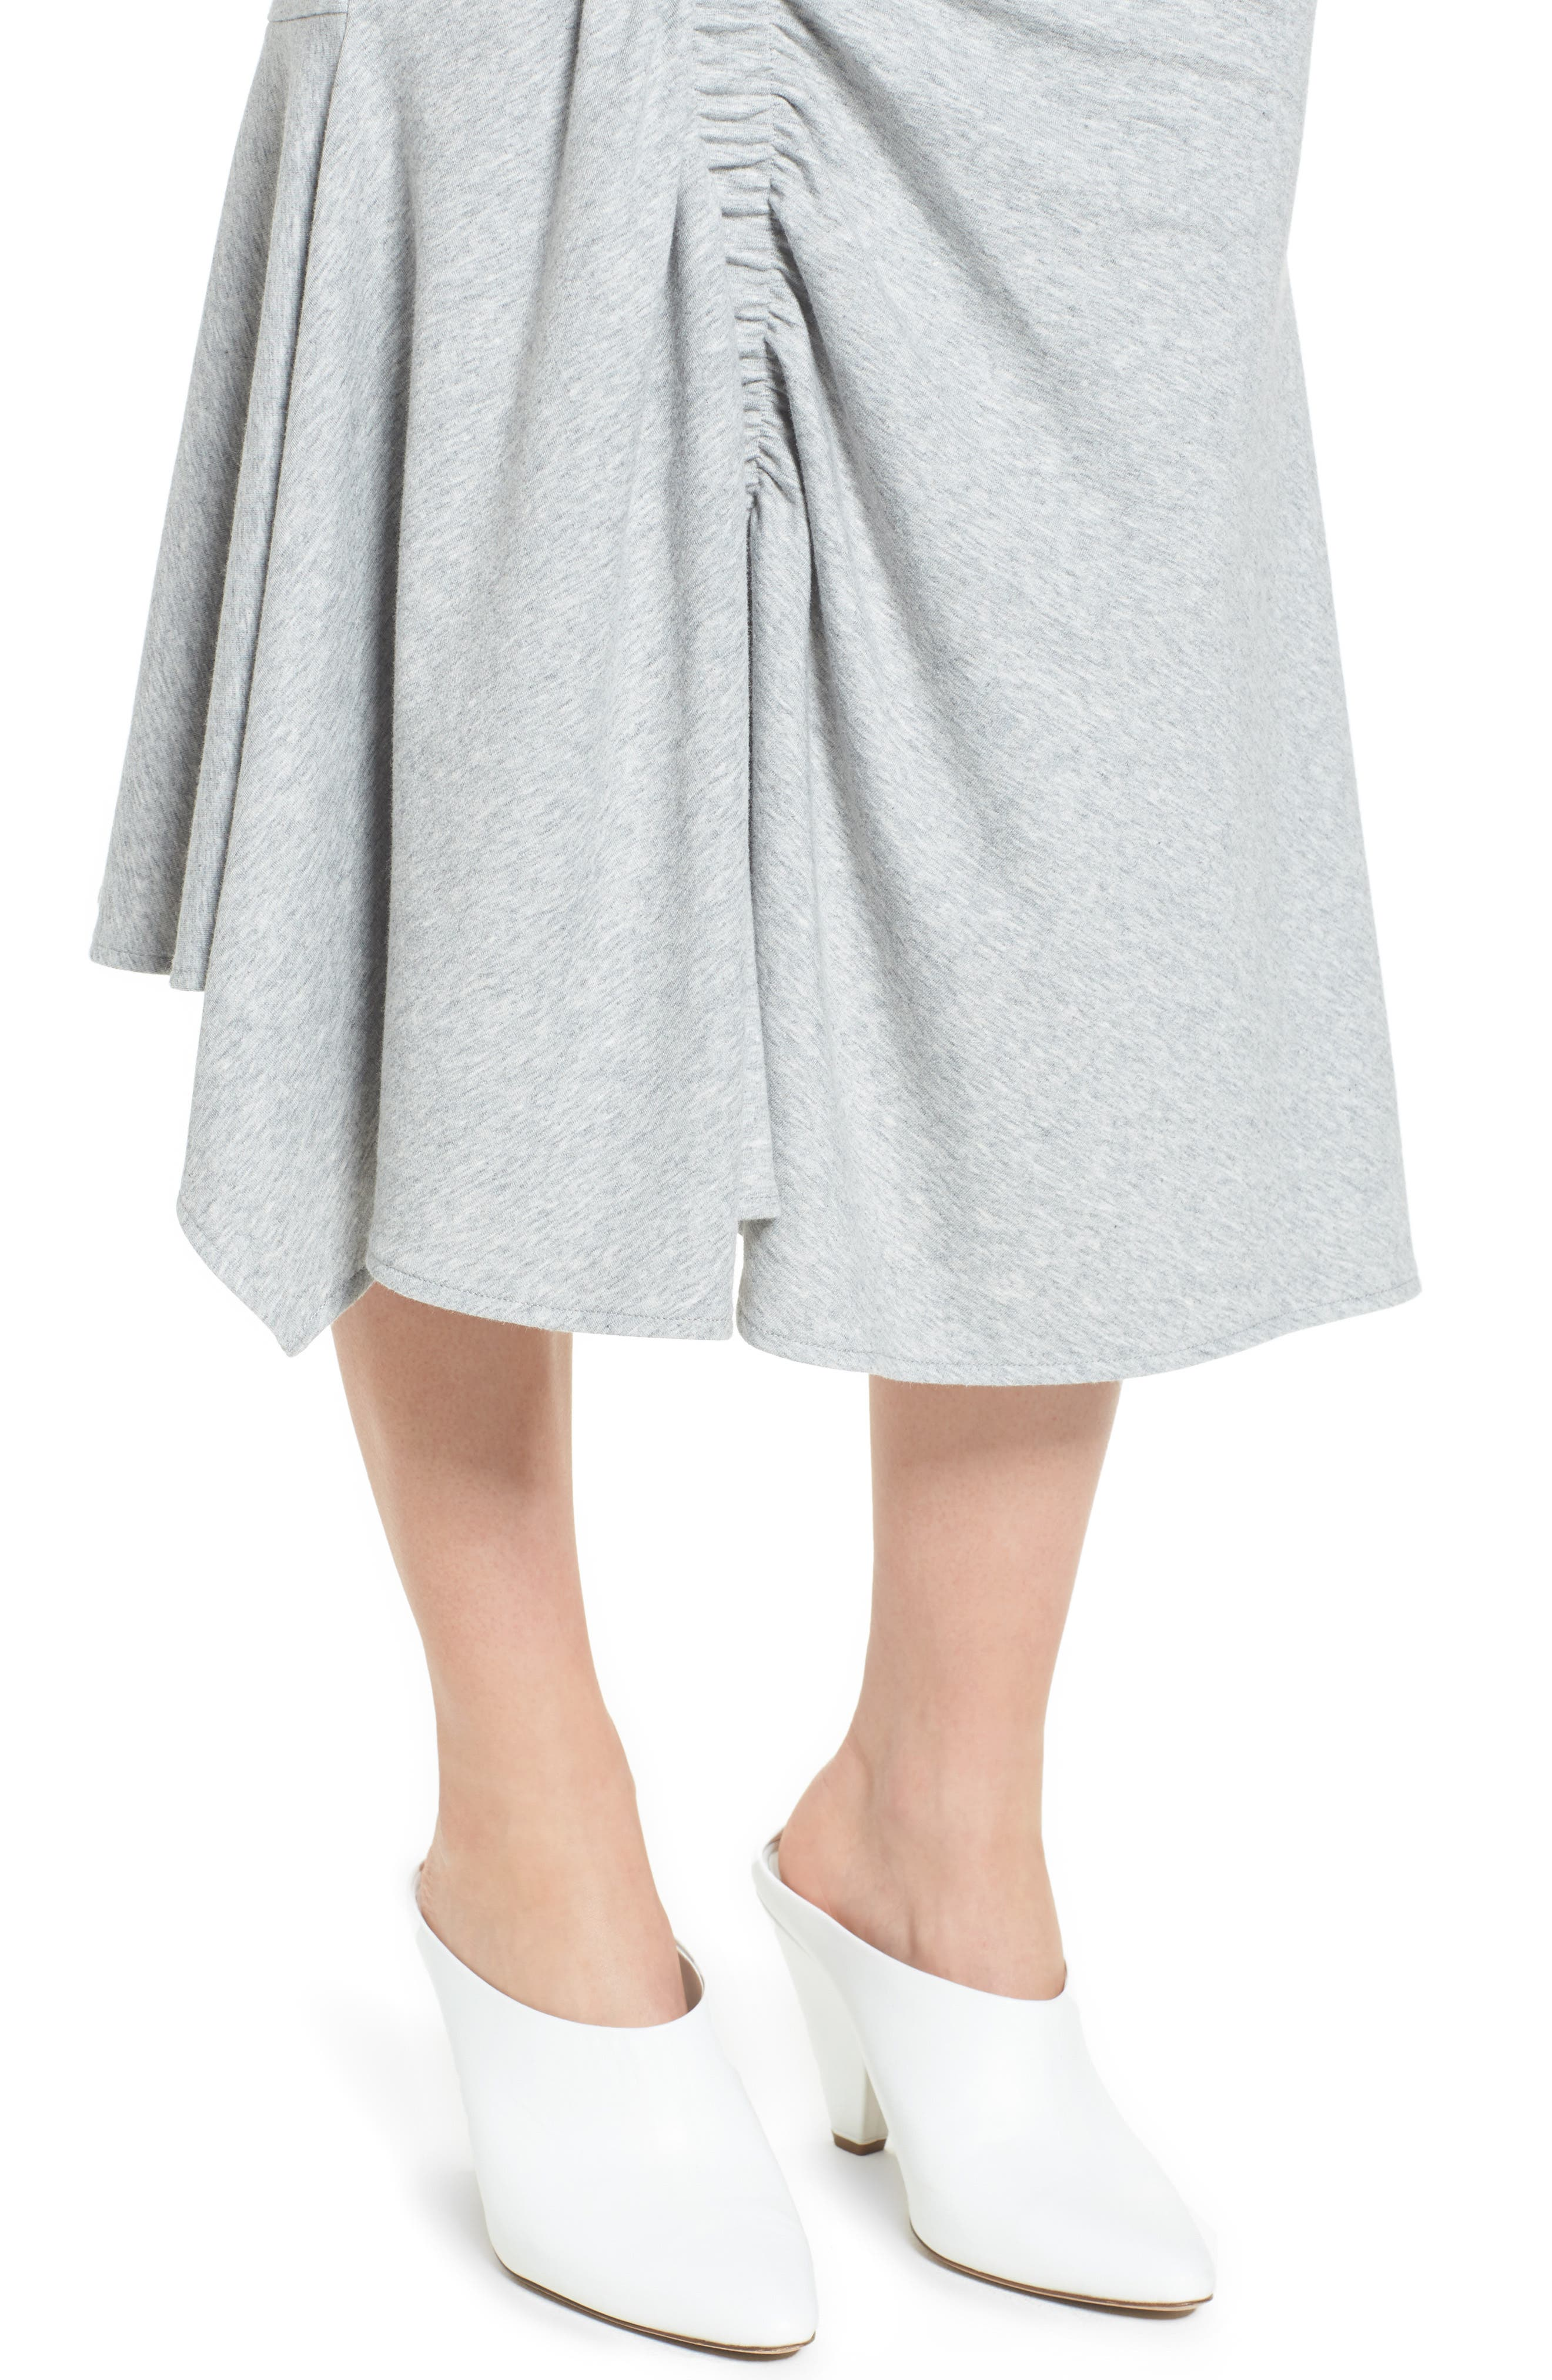 Ruched Fluted Midi Skirt,                             Alternate thumbnail 4, color,                             Grey Heather